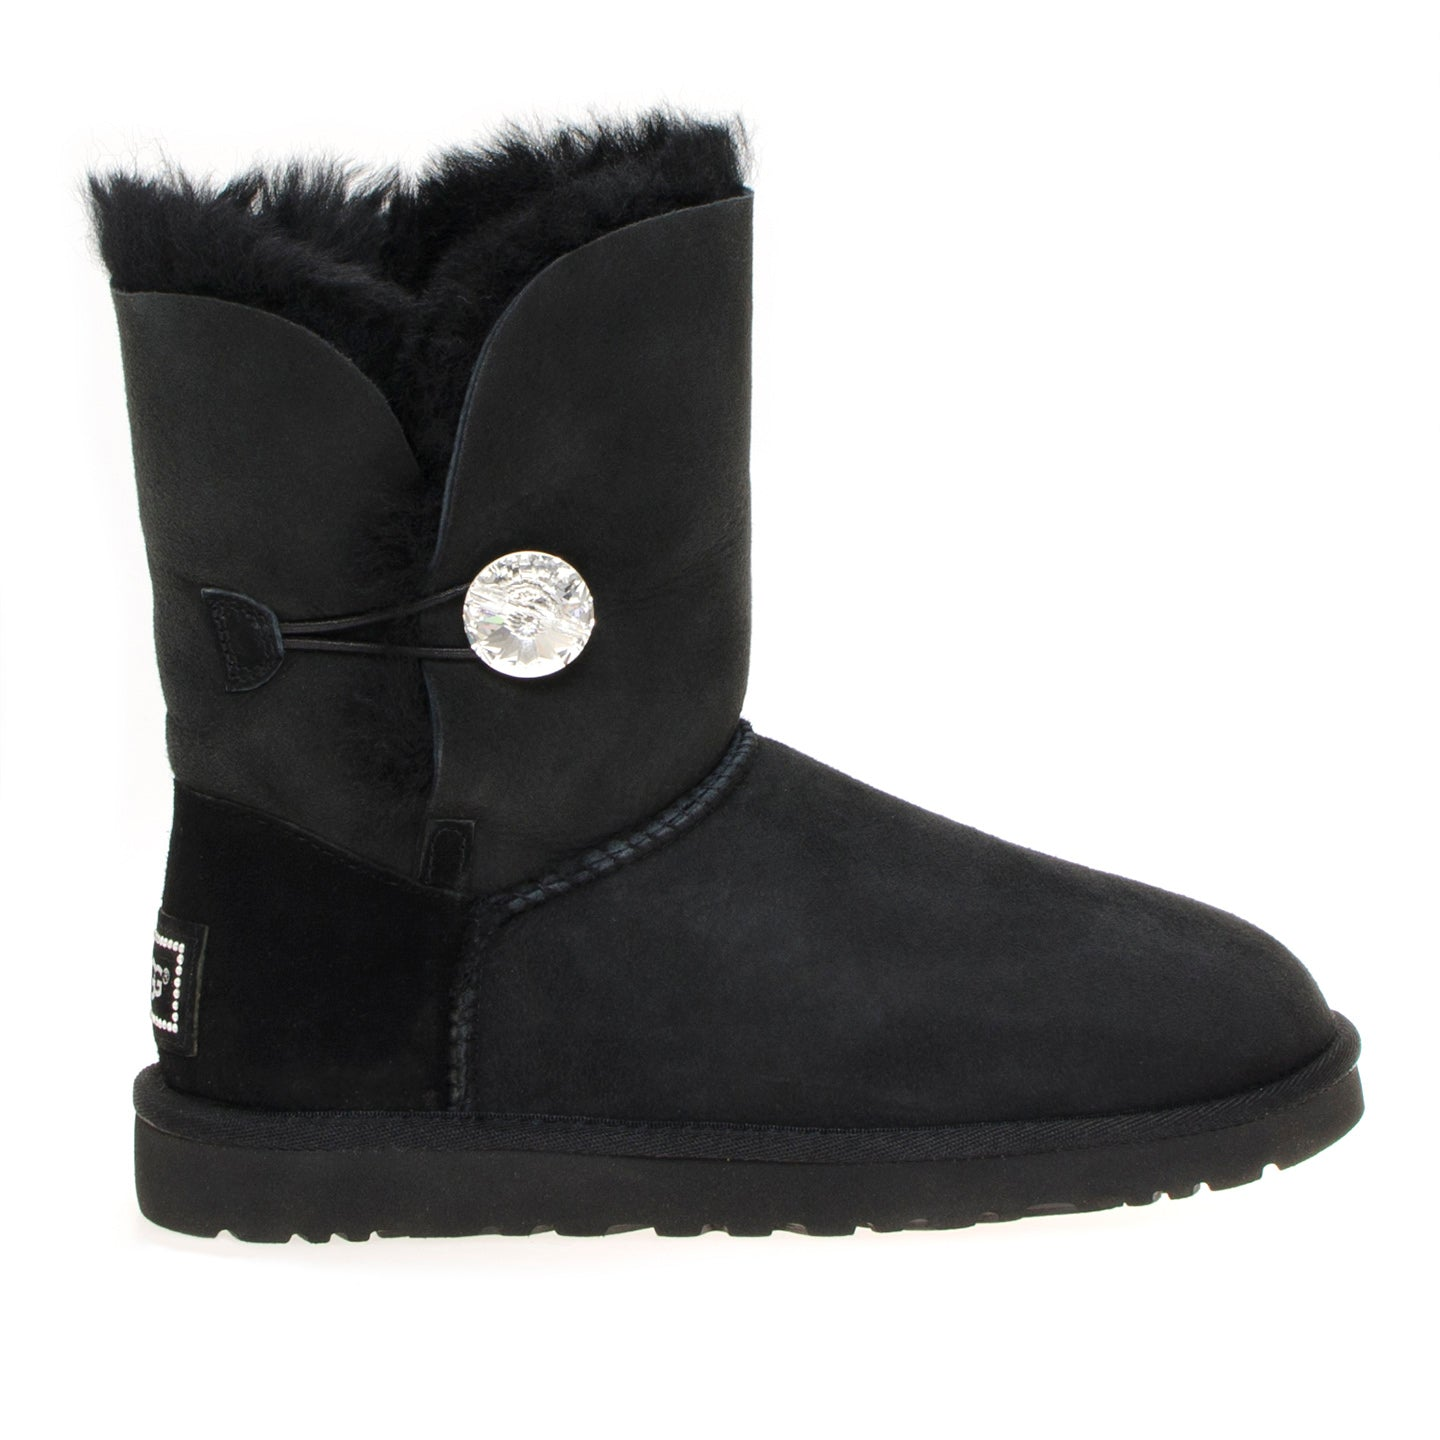 08201c72cfc UGG Bailey Button Bling Black Boots